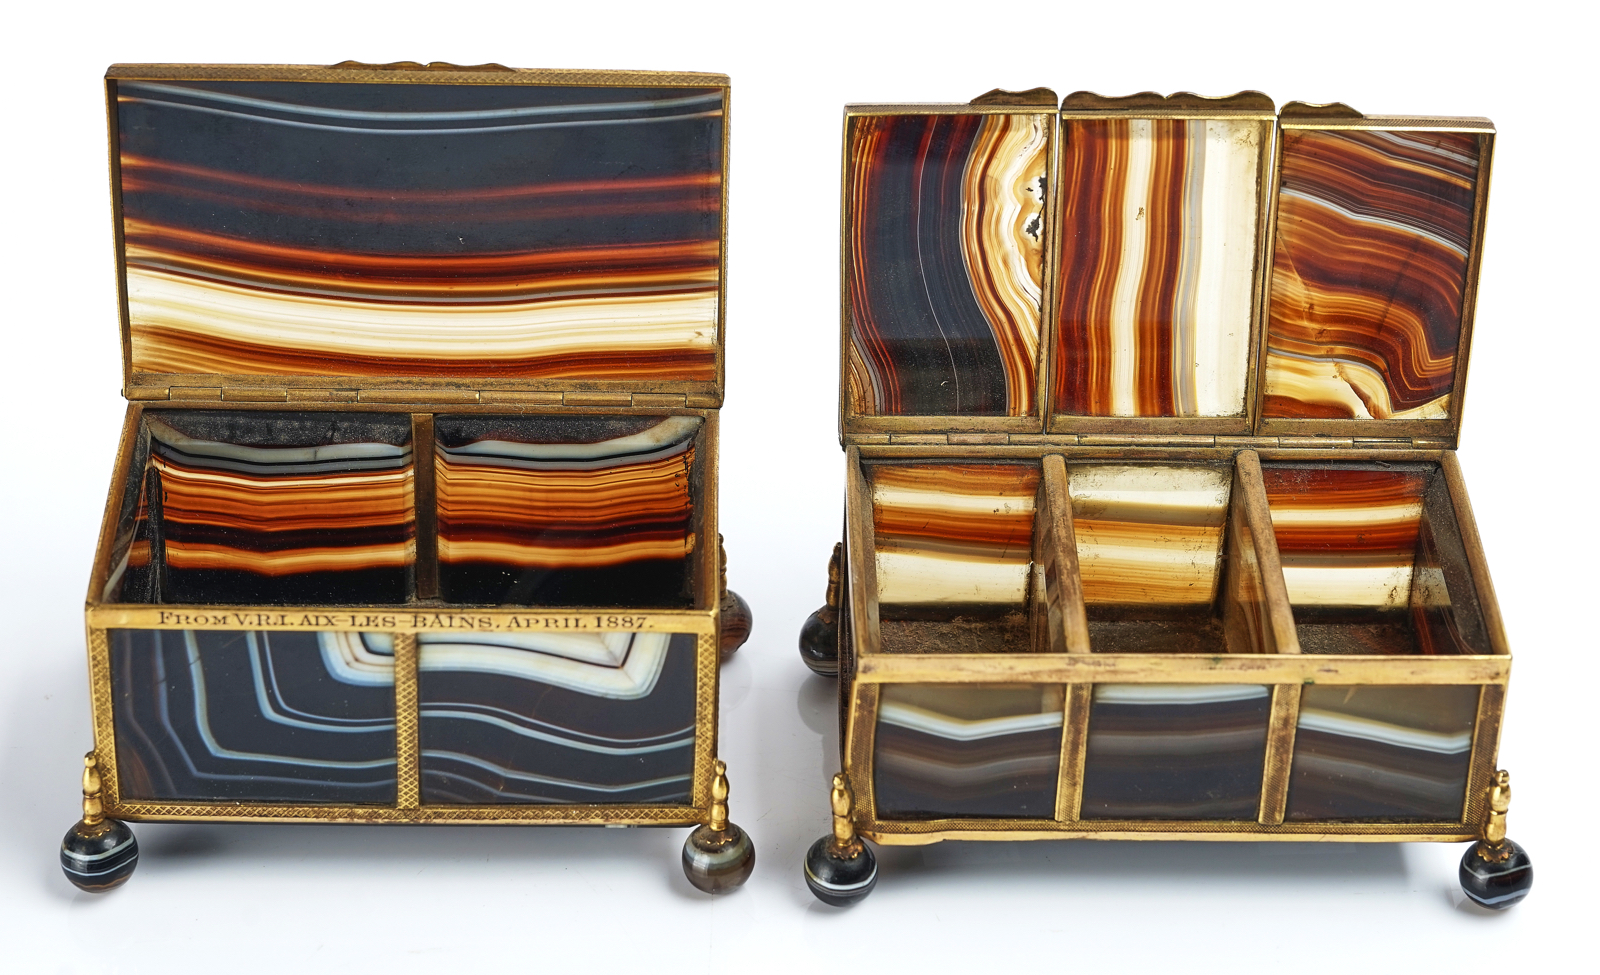 A VICTORIAN ROYAL PRESENTATION FRENCH ORMOLU MOUNTED AGATE CASKET AND ANOTHER SIMILAR - Image 5 of 5